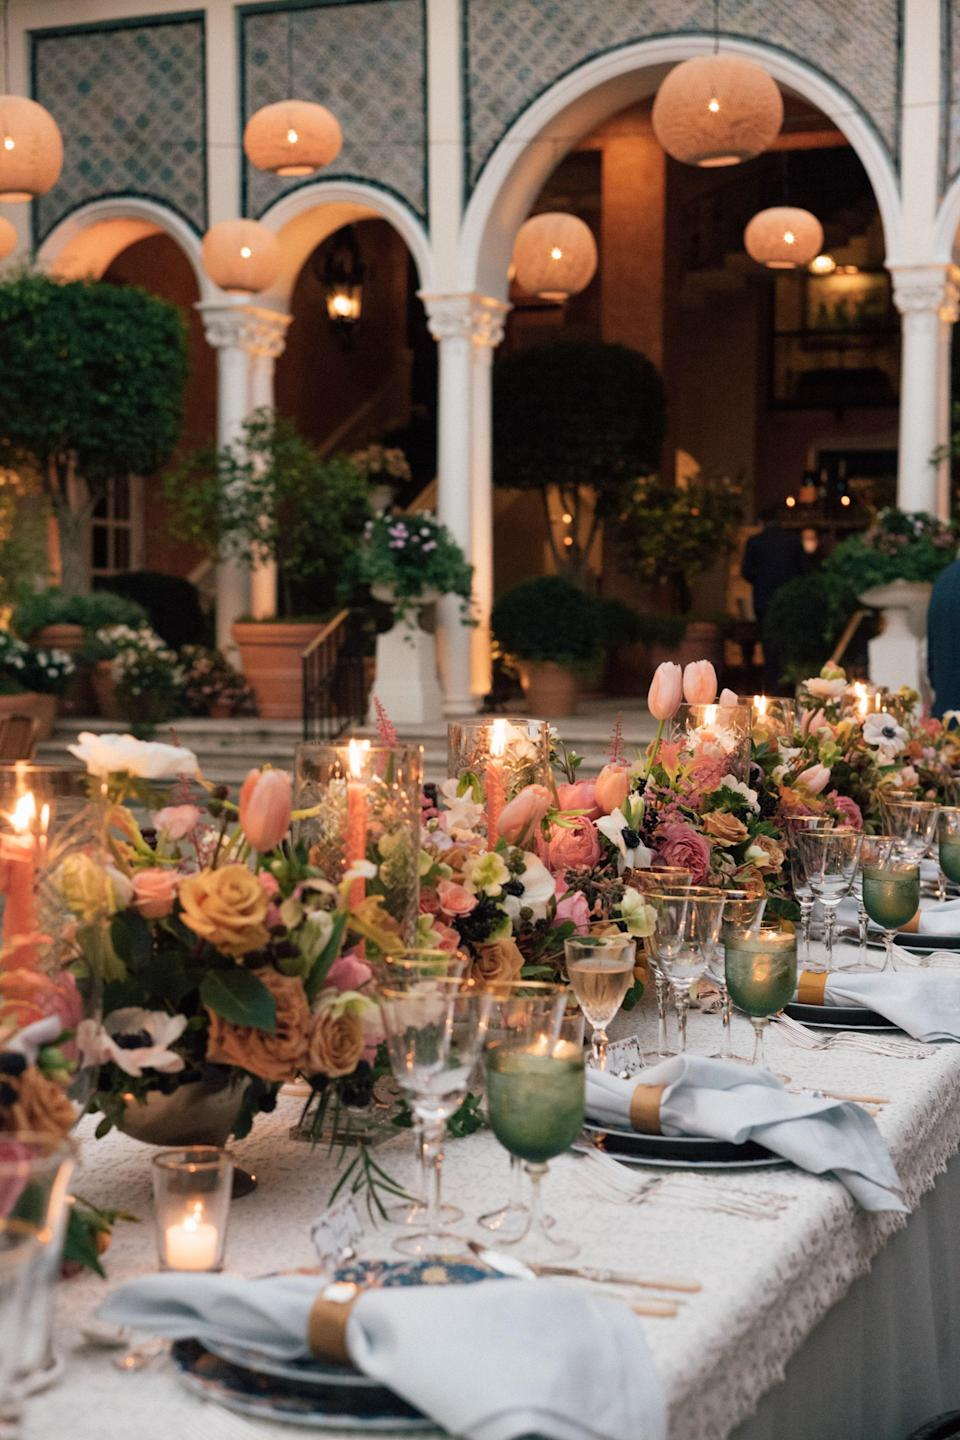 I loved the lush floral centerpieces—sprinkled with fruit!—that echoed the design of our wedding invitations and played off of our Haviland china. We added candlelight at multiple heights with tapers and votives to set the mood.